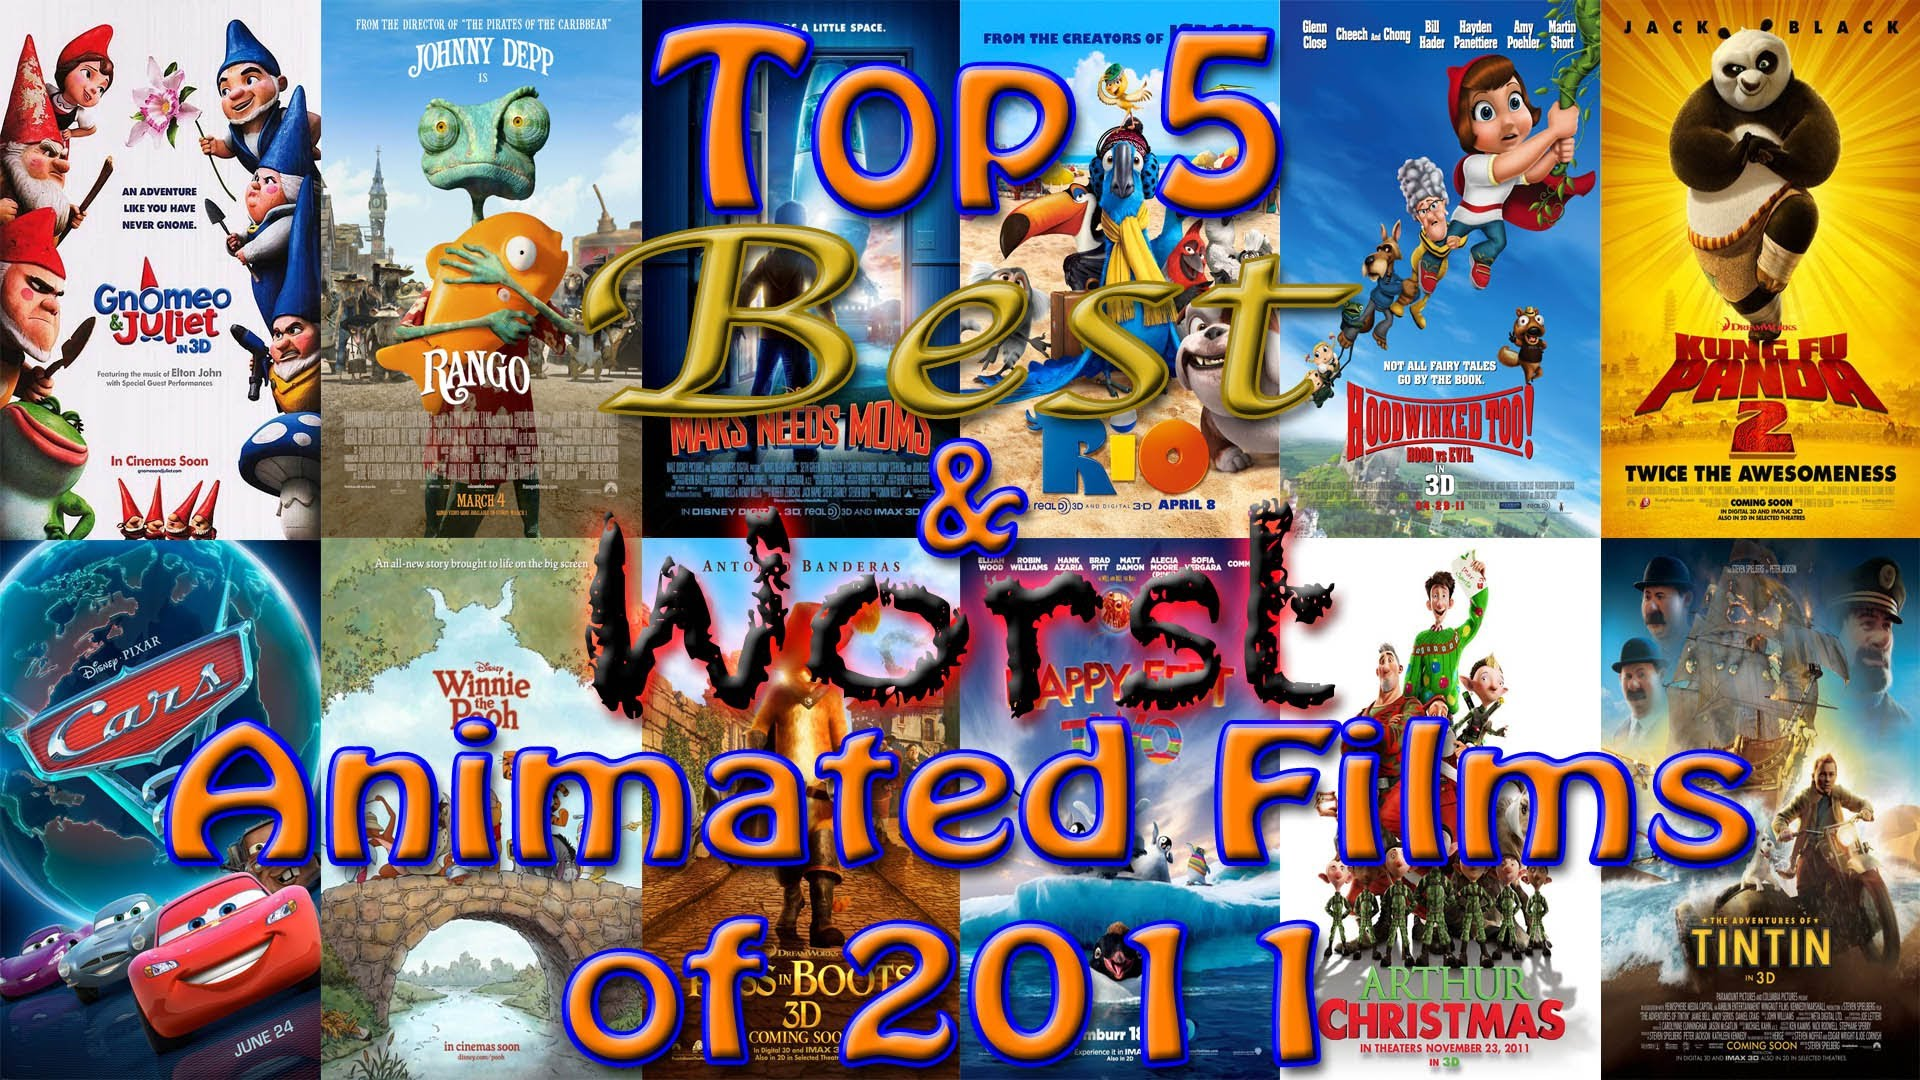 Good movies in 2011